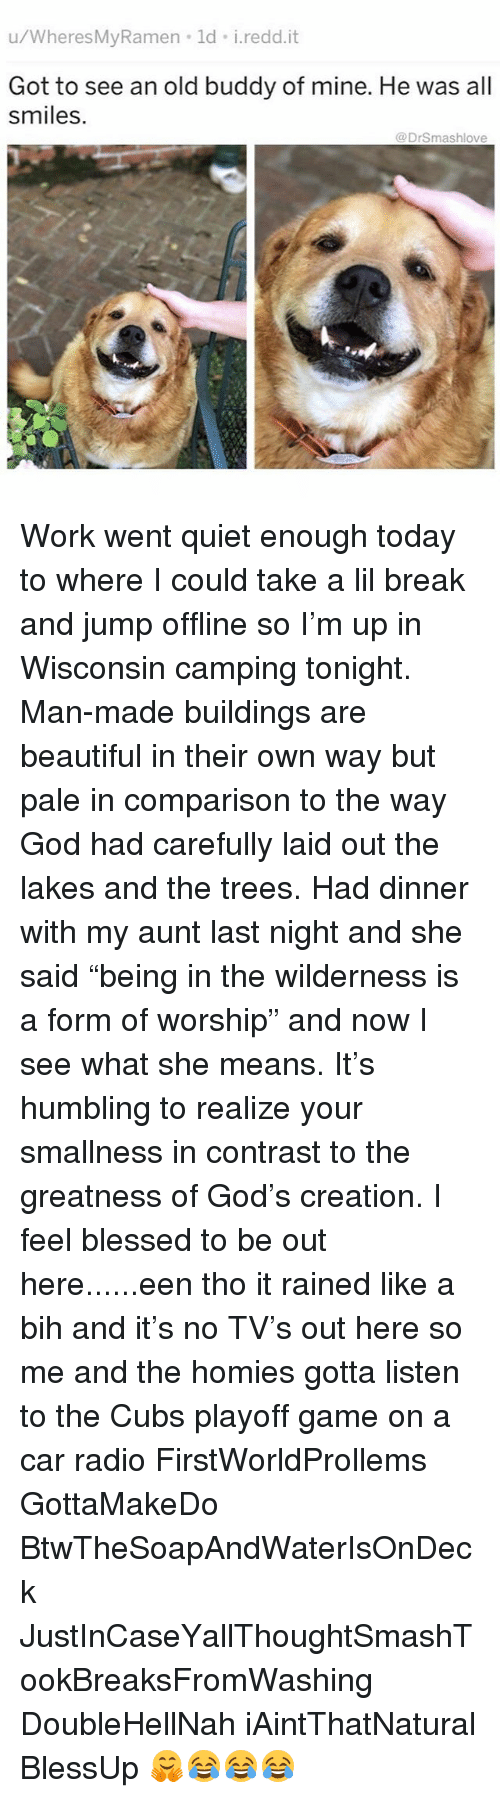 "Beautiful, Blessed, and God: u/WheresMyRamen ld i.redd.it  Got to see an old buddy of mine. He was all  smiles.  @DrSmashlove Work went quiet enough today to where I could take a lil break and jump offline so I'm up in Wisconsin camping tonight. Man-made buildings are beautiful in their own way but pale in comparison to the way God had carefully laid out the lakes and the trees. Had dinner with my aunt last night and she said ""being in the wilderness is a form of worship"" and now I see what she means. It's humbling to realize your smallness in contrast to the greatness of God's creation. I feel blessed to be out here......een tho it rained like a bih and it's no TV's out here so me and the homies gotta listen to the Cubs playoff game on a car radio FirstWorldProllems GottaMakeDo BtwTheSoapAndWaterIsOnDeck JustInCaseYallThoughtSmashTookBreaksFromWashing DoubleHellNah iAintThatNatural BlessUp 🤗😂😂😂"